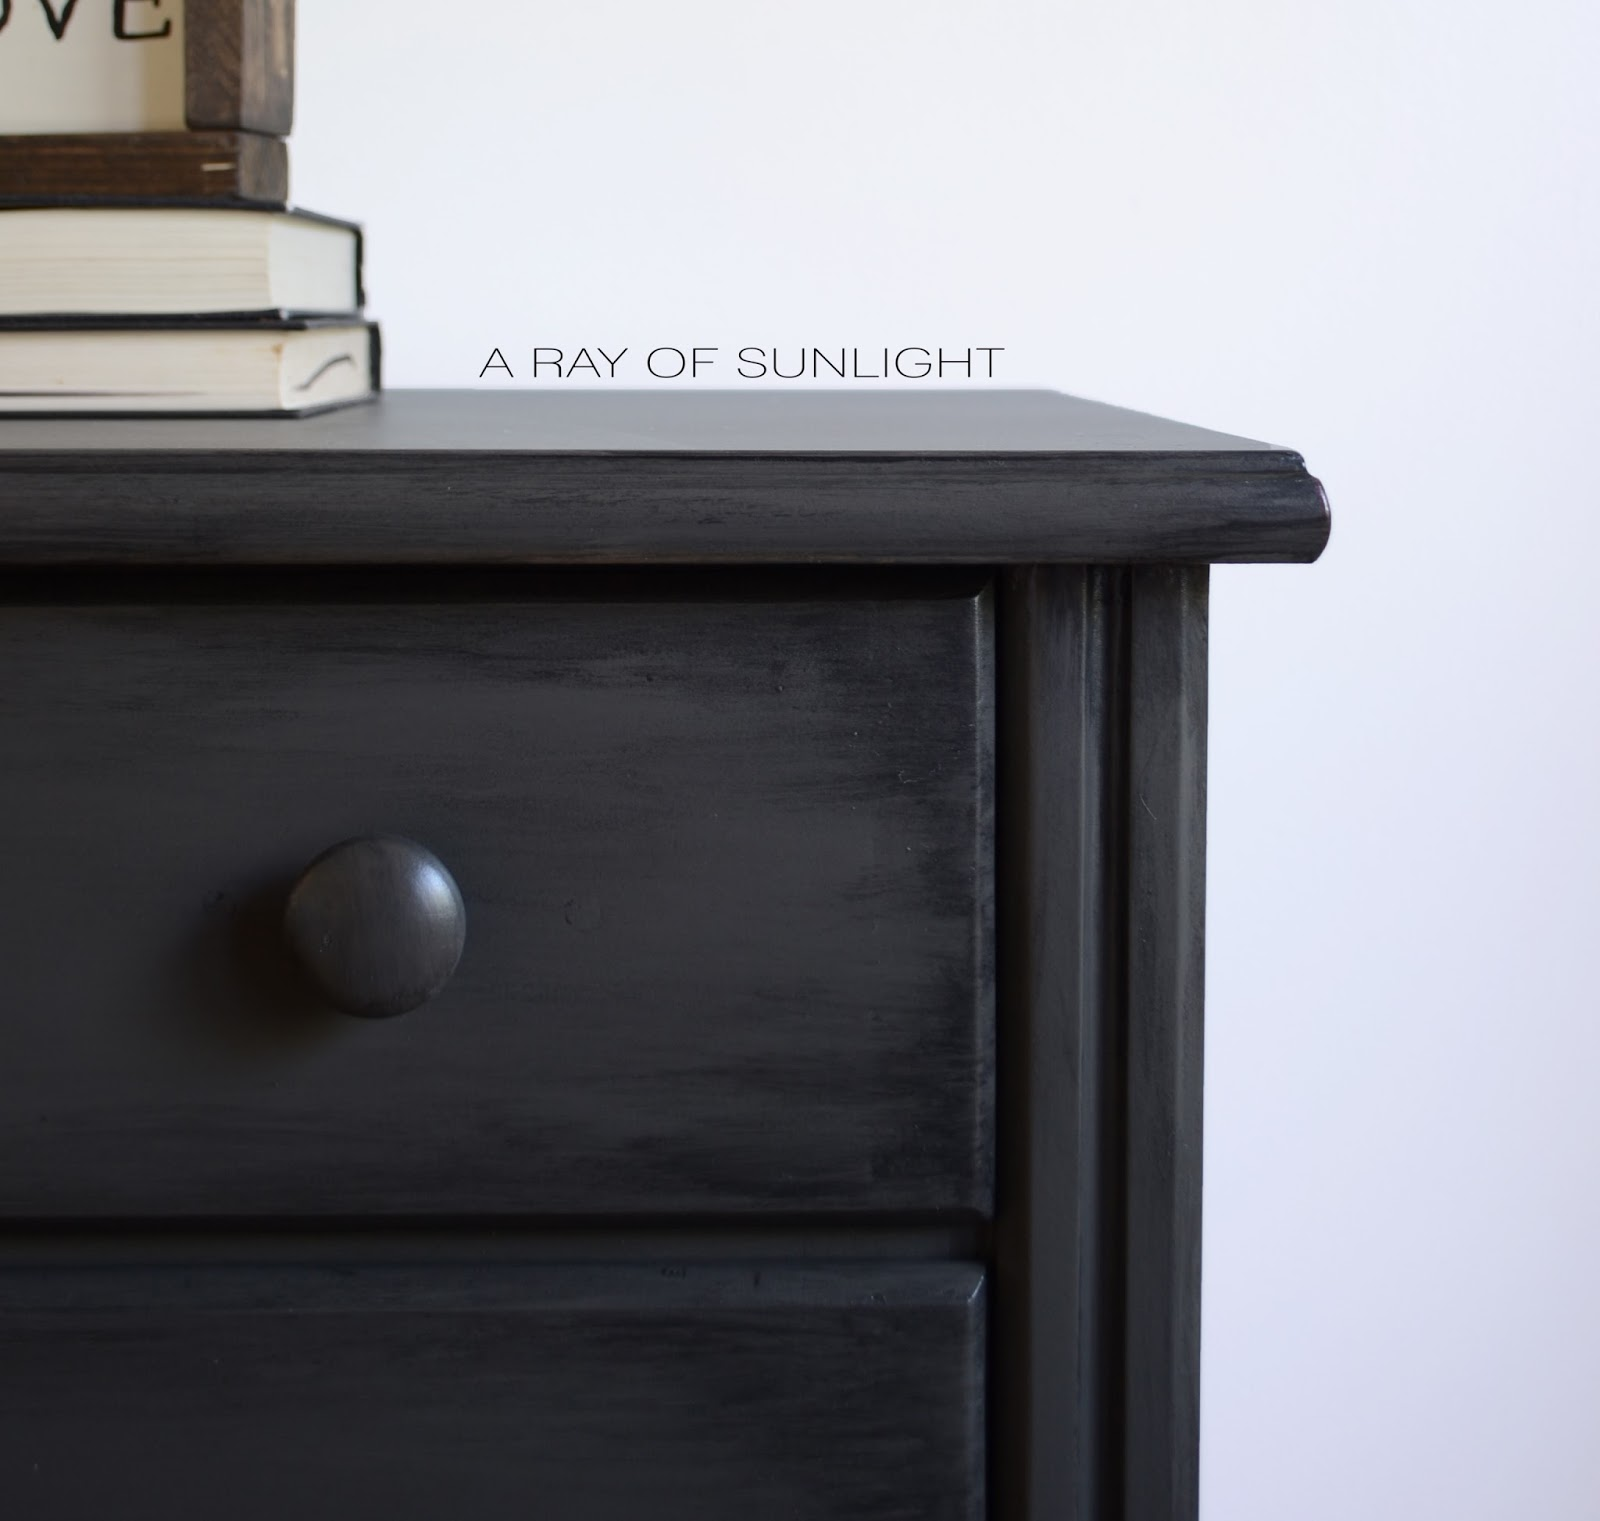 His and Hers Mismatched Oversized Nightstand Dressers in Dark Grey with  Black Antiquing Glaze by A. A Ray of Sunlight  His and Hers Nightstands